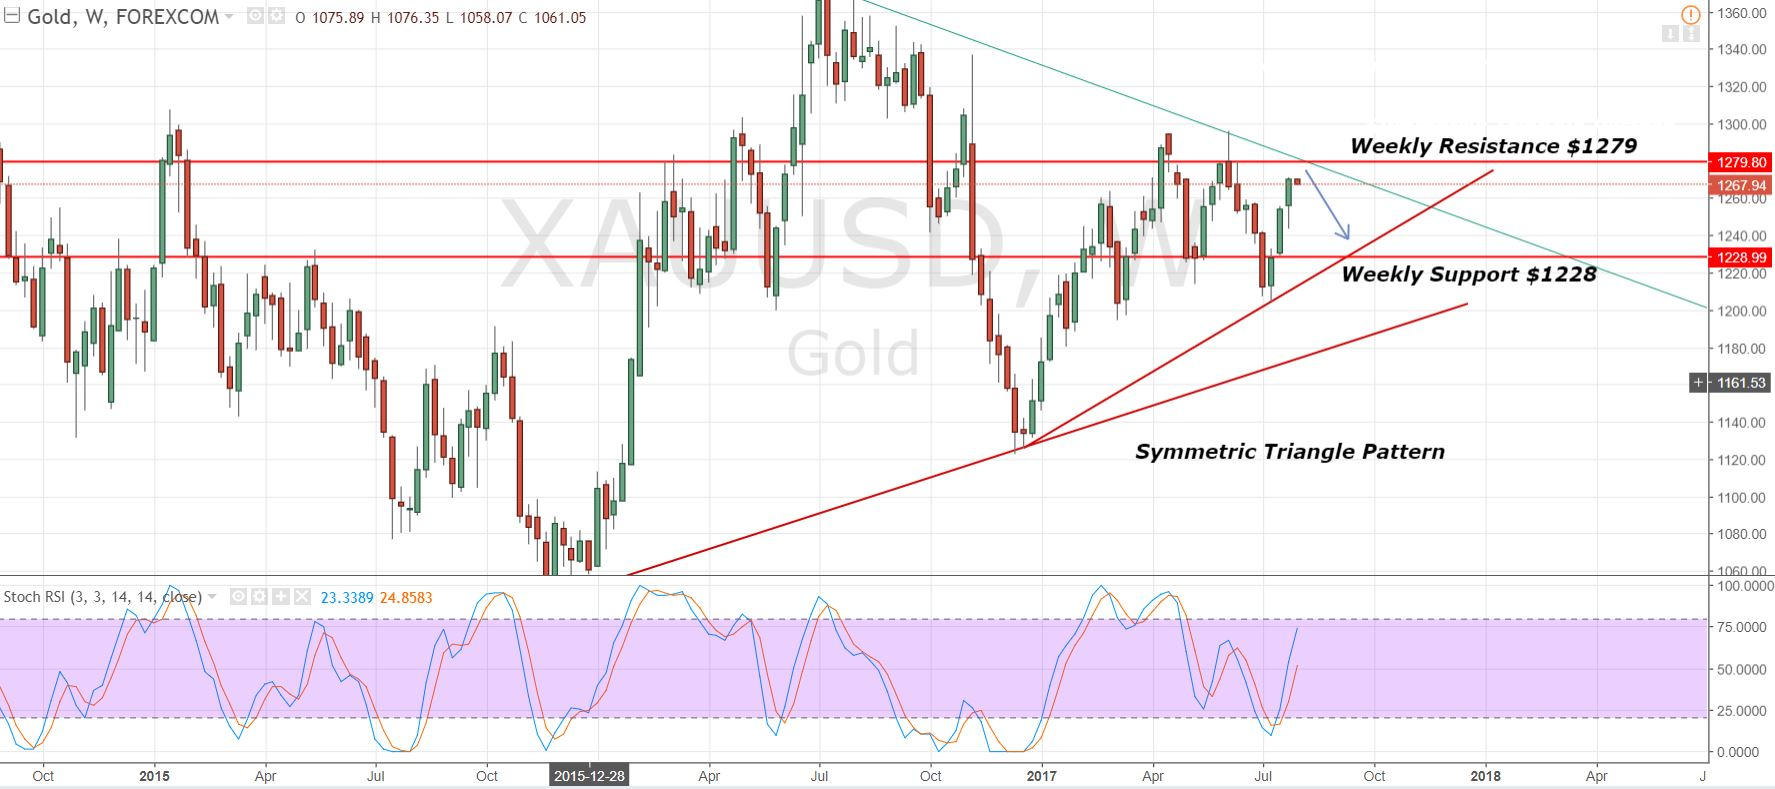 Gold - Weekly Chart - Symmetric Triangle Pattern